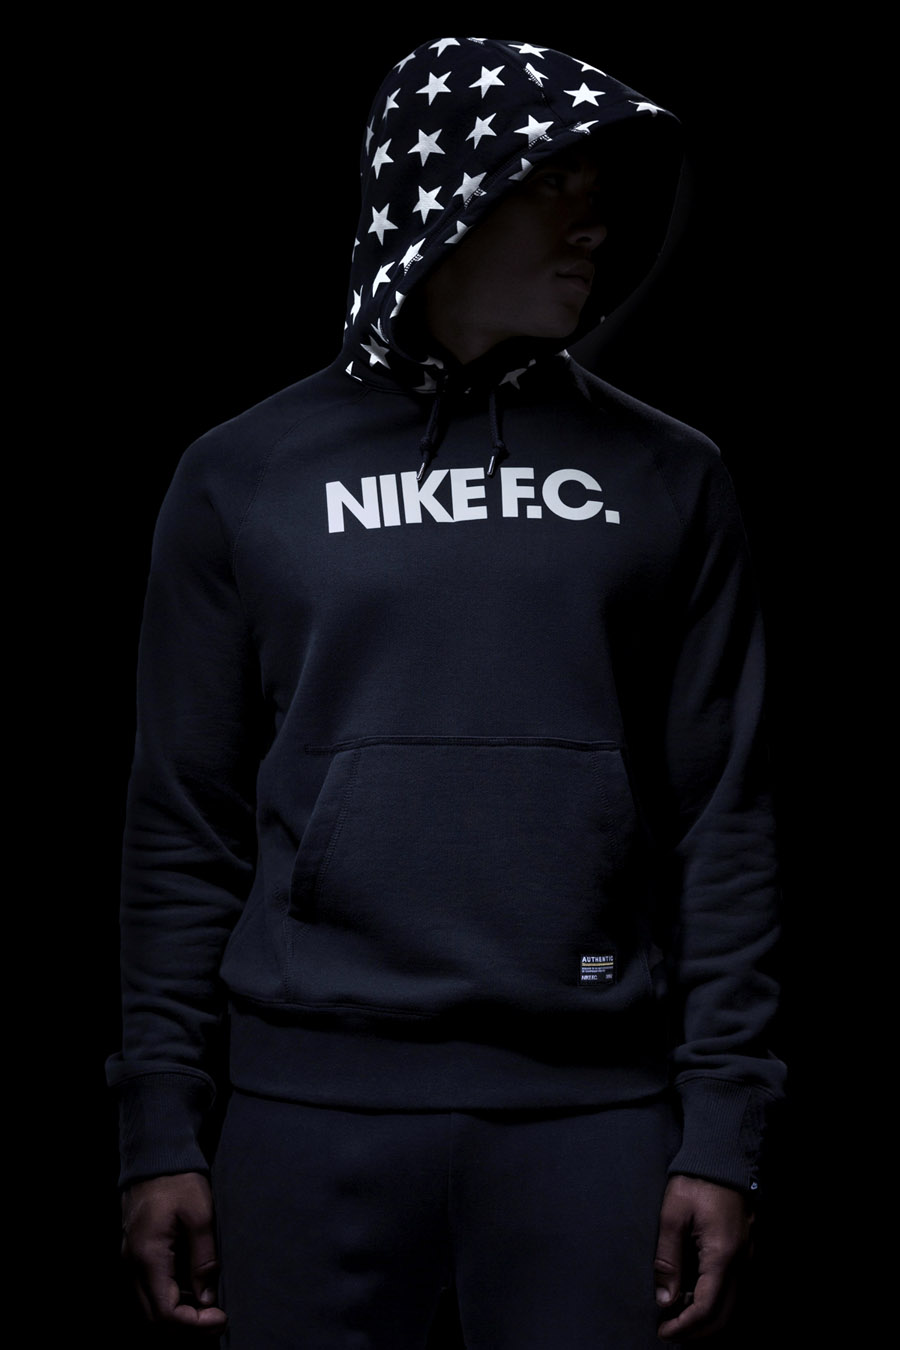 huge selection of ae430 a3584 Nike F.C. Stars Pullover